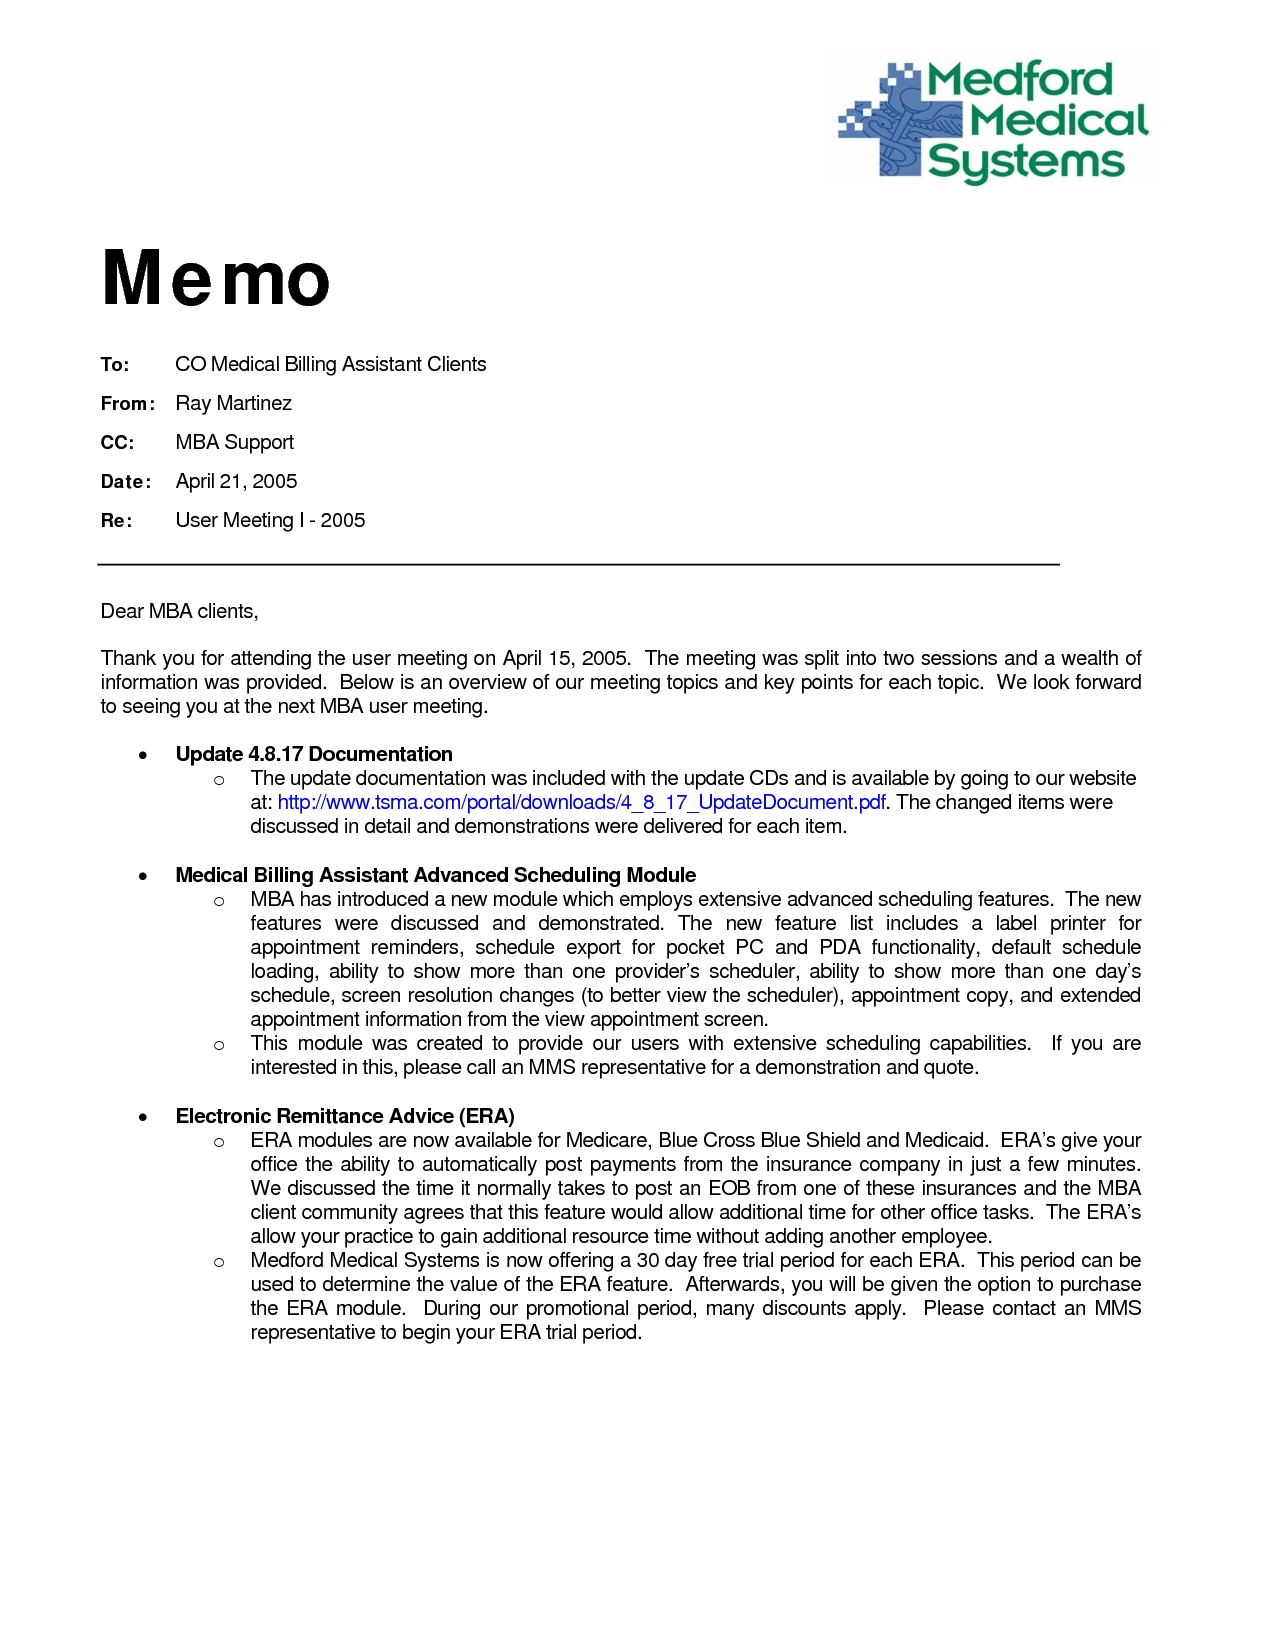 27 Images Of Memo Form Template | Infovia with Medical Memorandum Format 22995